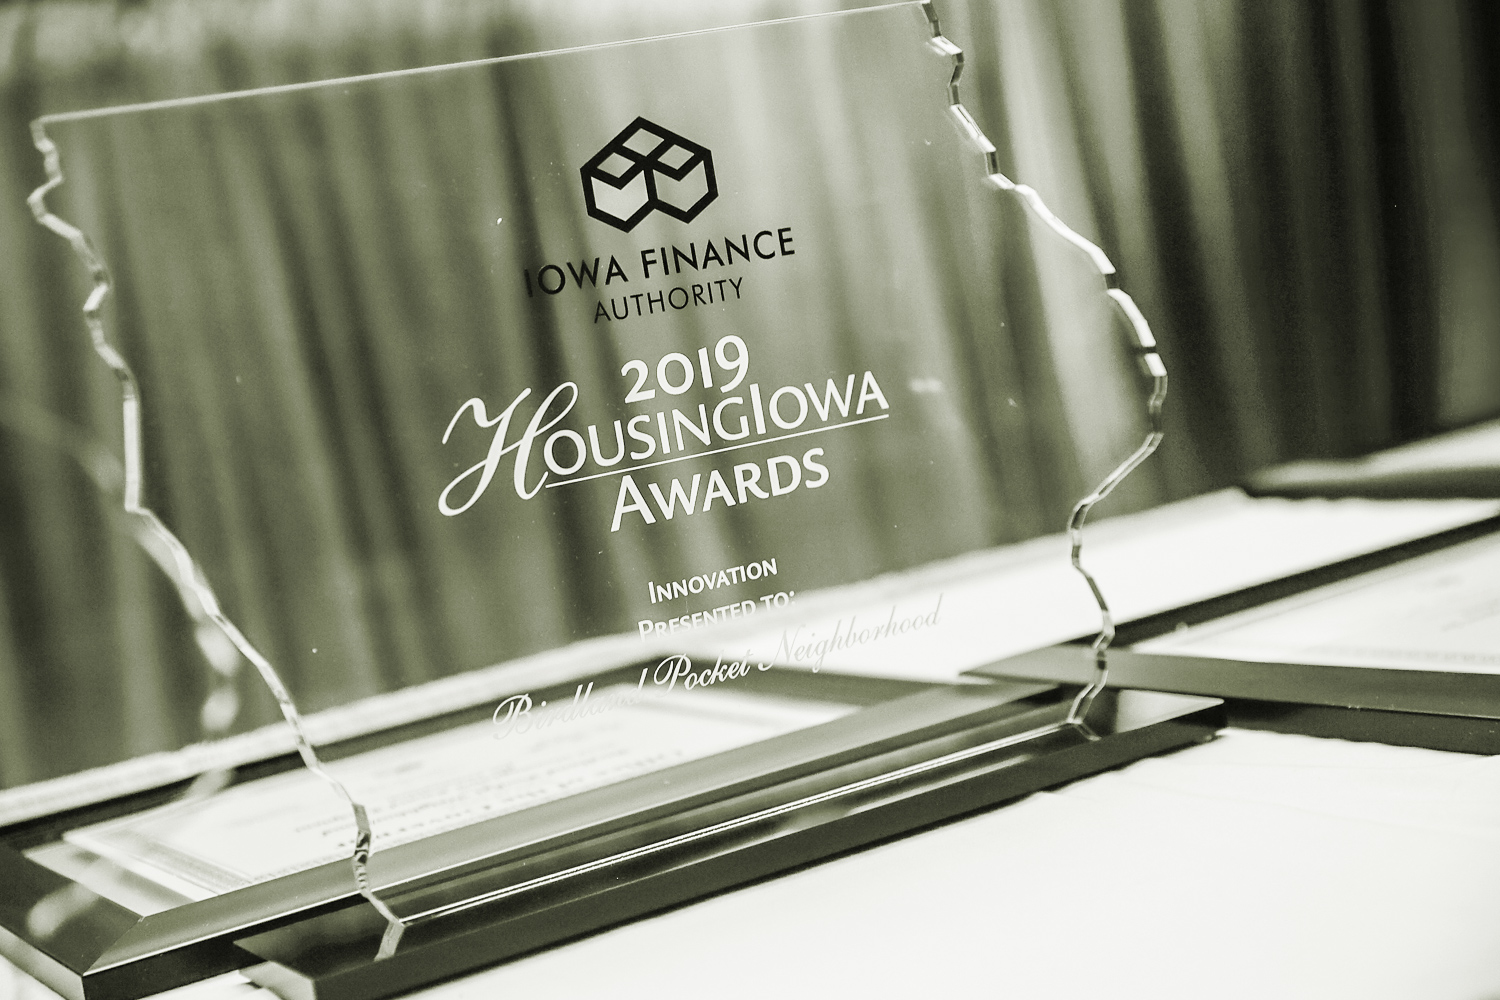 Photo showing an award with Iowa Finance Authority's logo on it. The award is made of glass and is cut in the shape of Iowa.